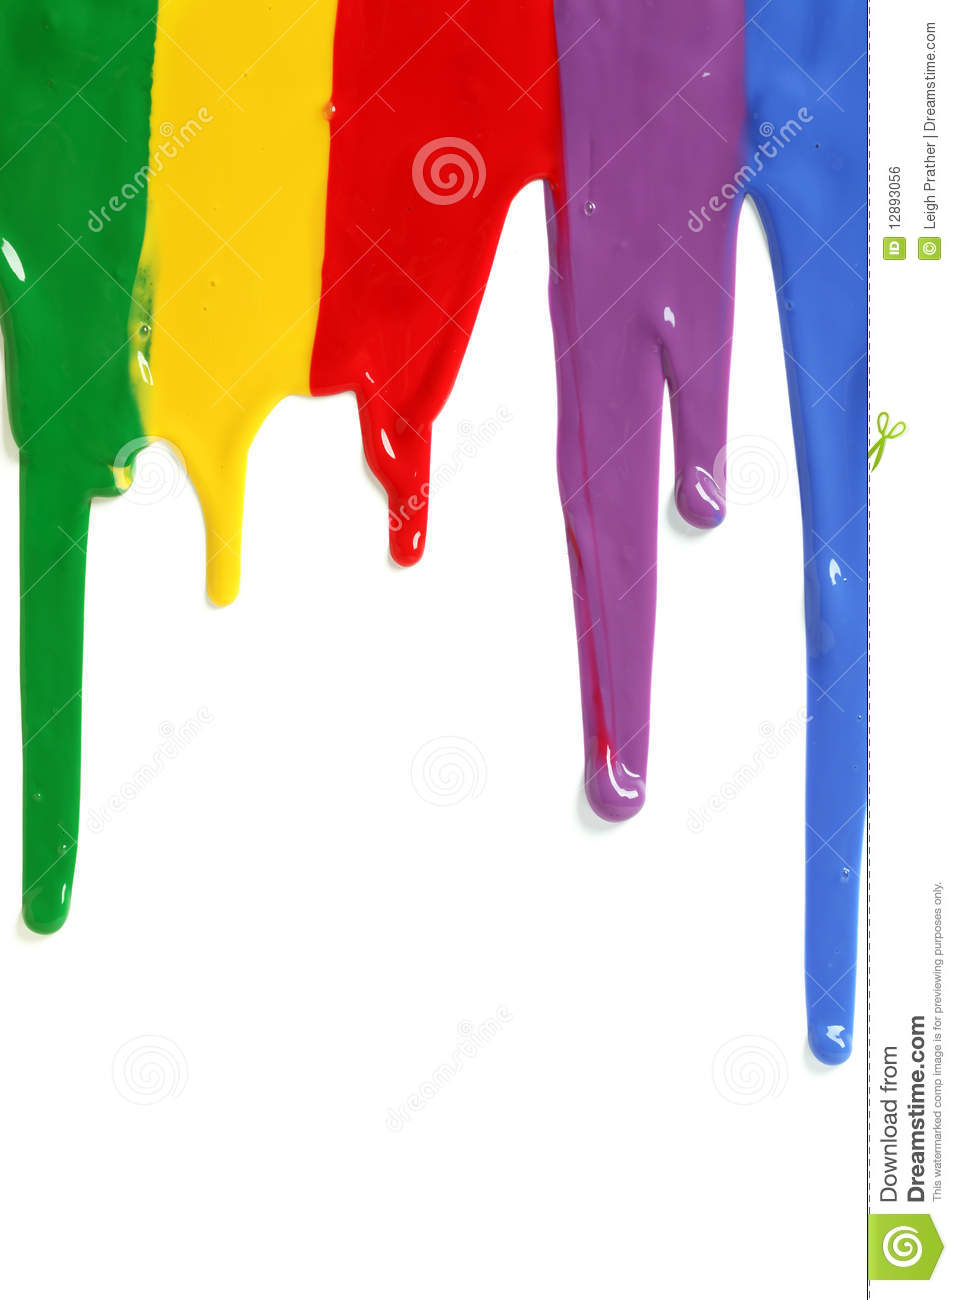 Paint Dripping Royalty Free Stock Image - Image: 12893056